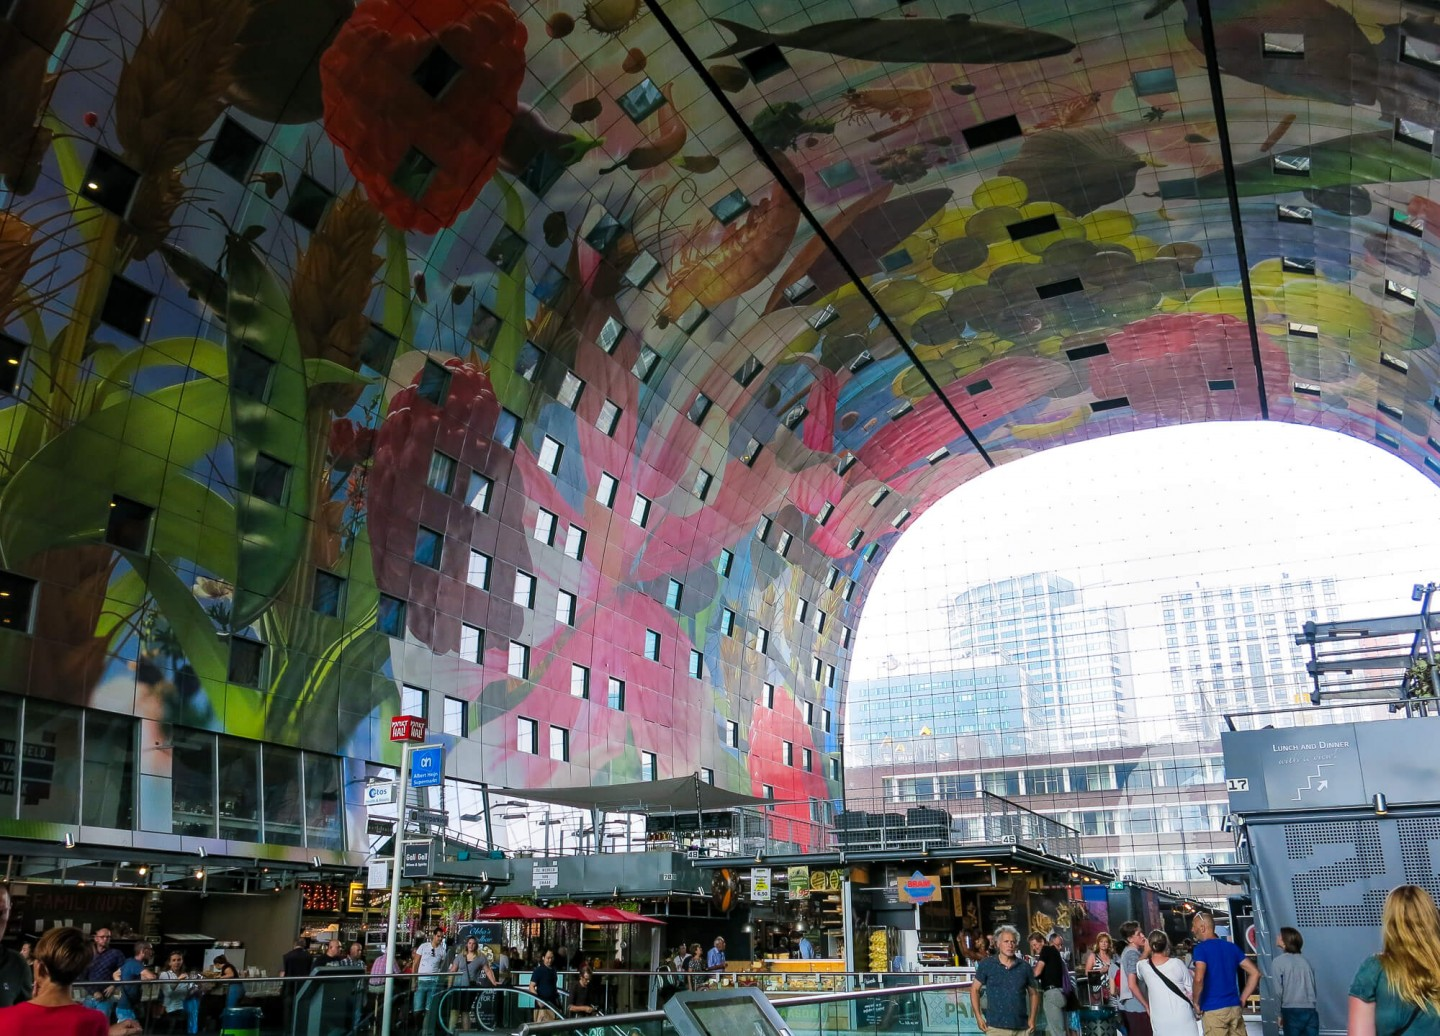 The Markthal in Rotterdam is a massive market hall with food stalls, restaurants and a supermarket. It also has apartments that have windows down into the market.There is a great range of food on offer.